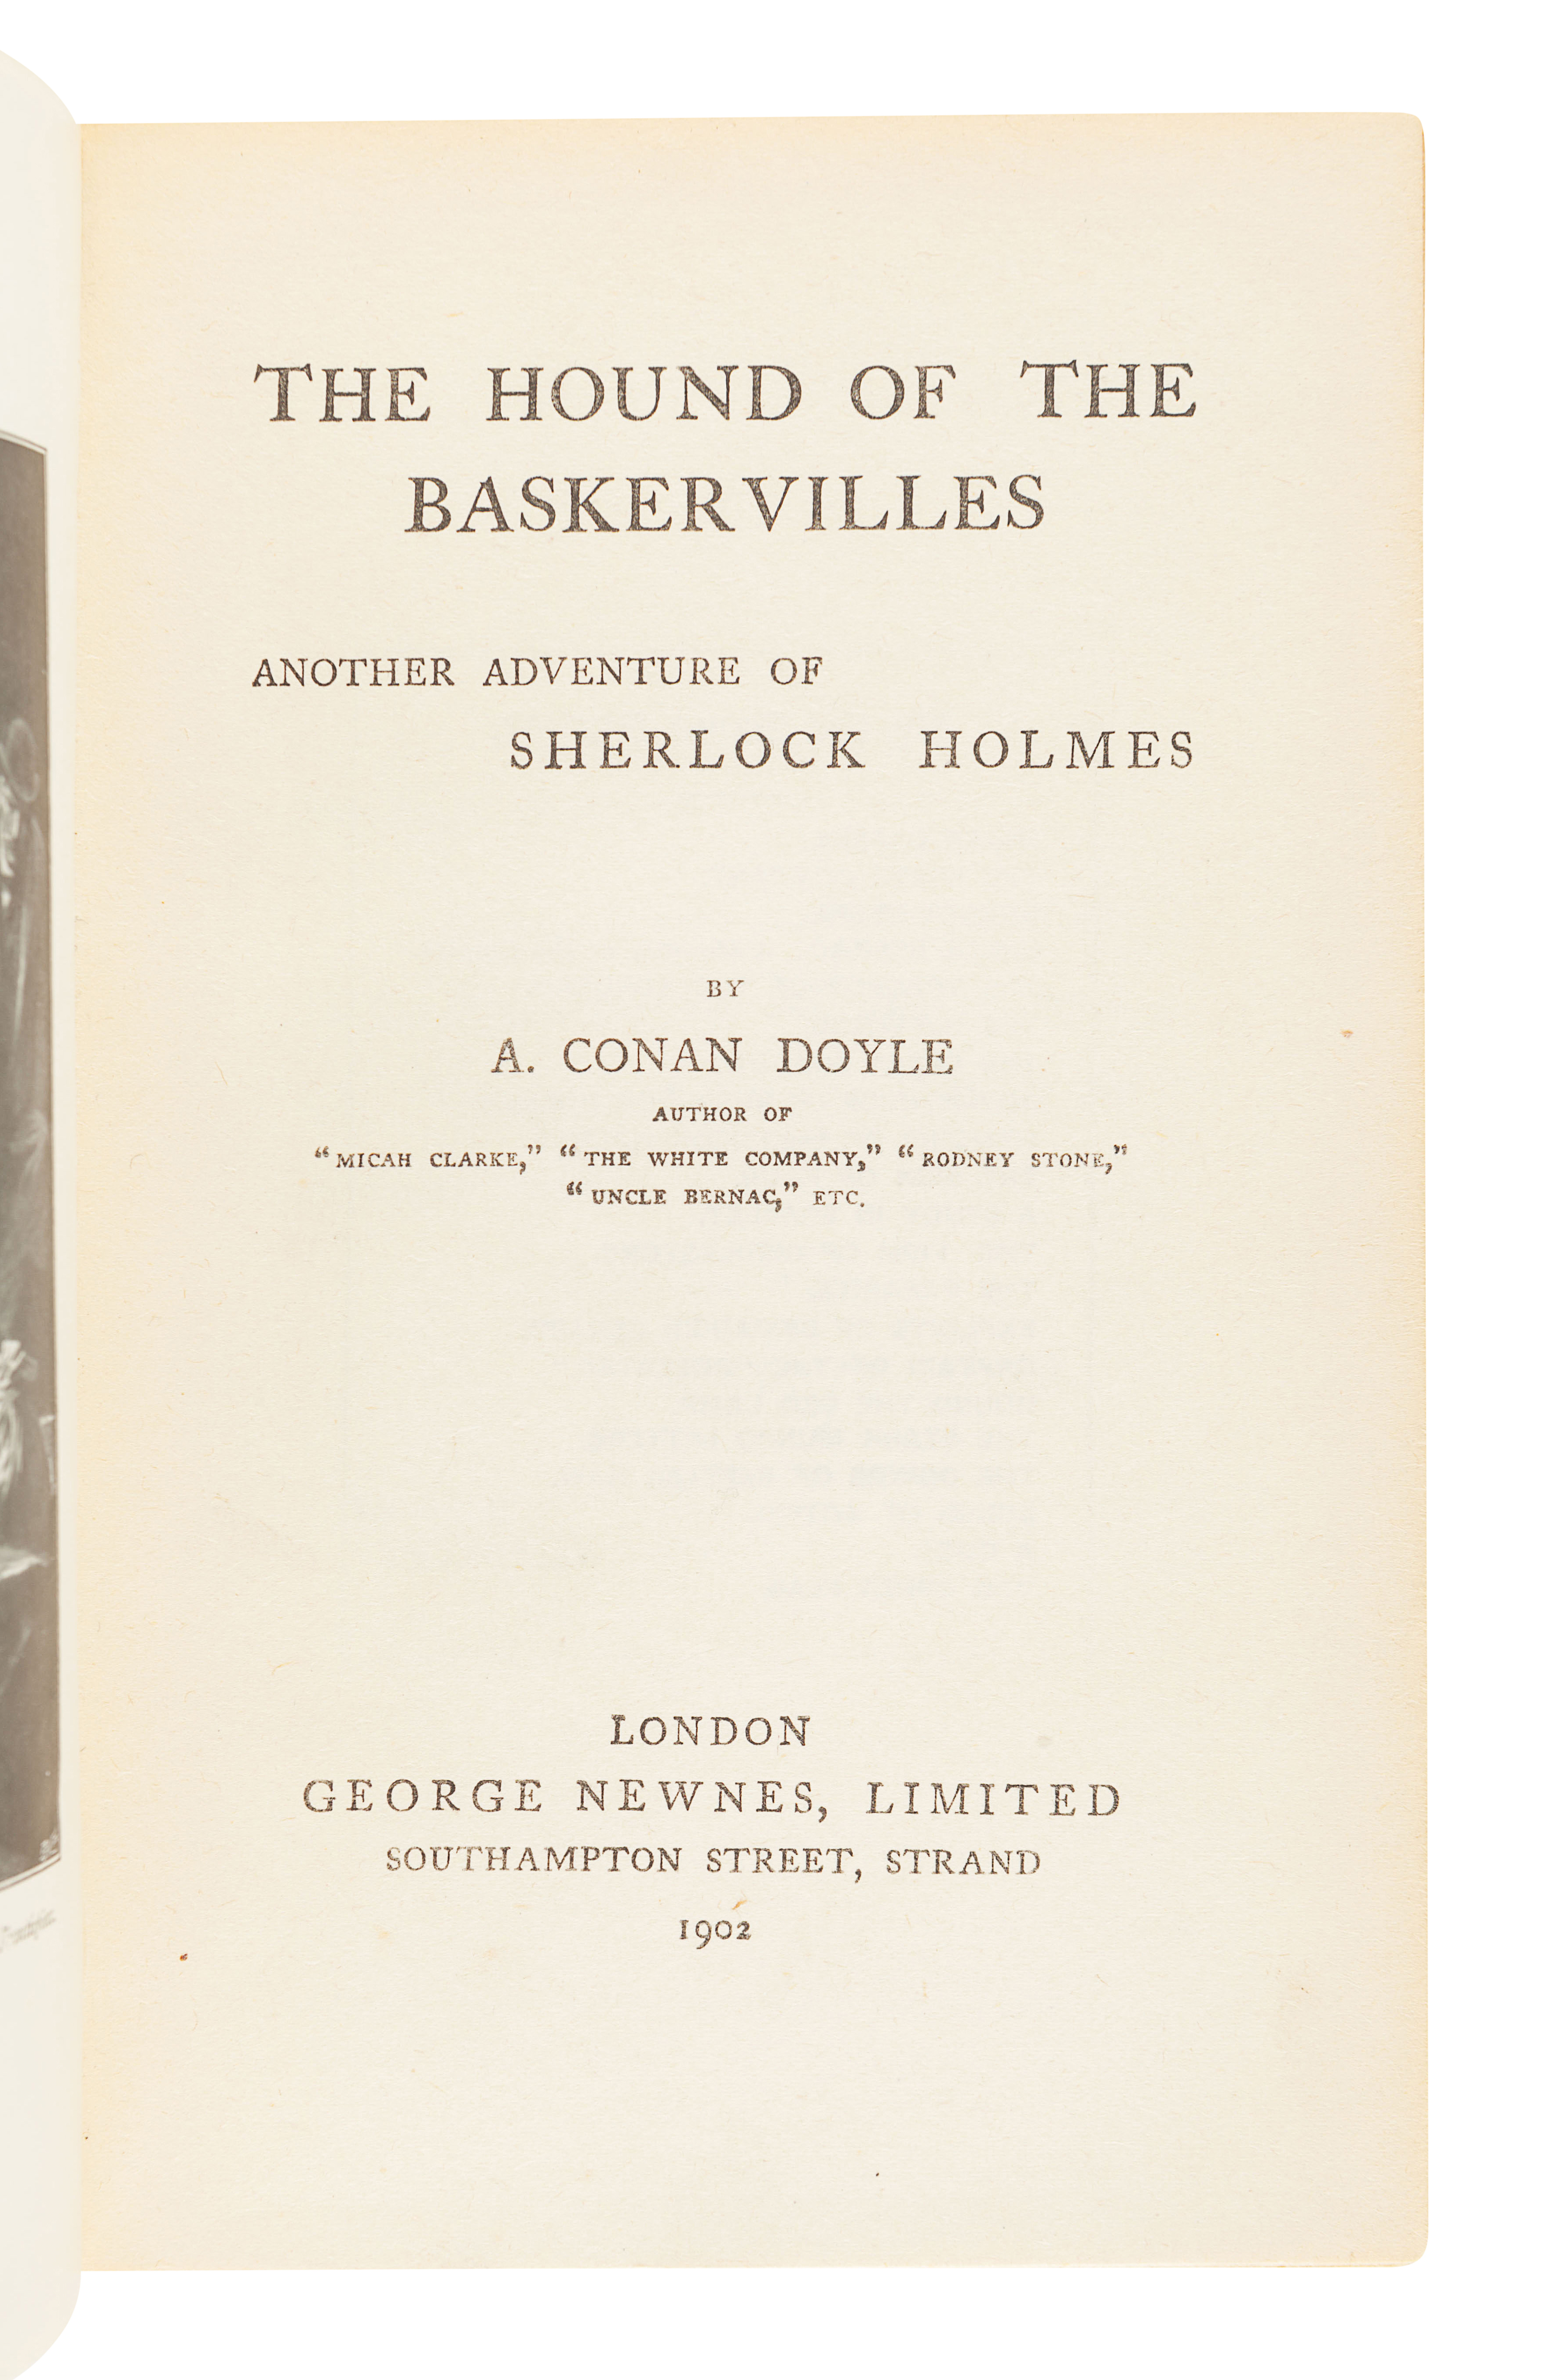 DOYLE, Arthur Conan (1859-1930). The Hound of the Baskervilles. London: George Newnes, Limited, 1902 - Image 3 of 3